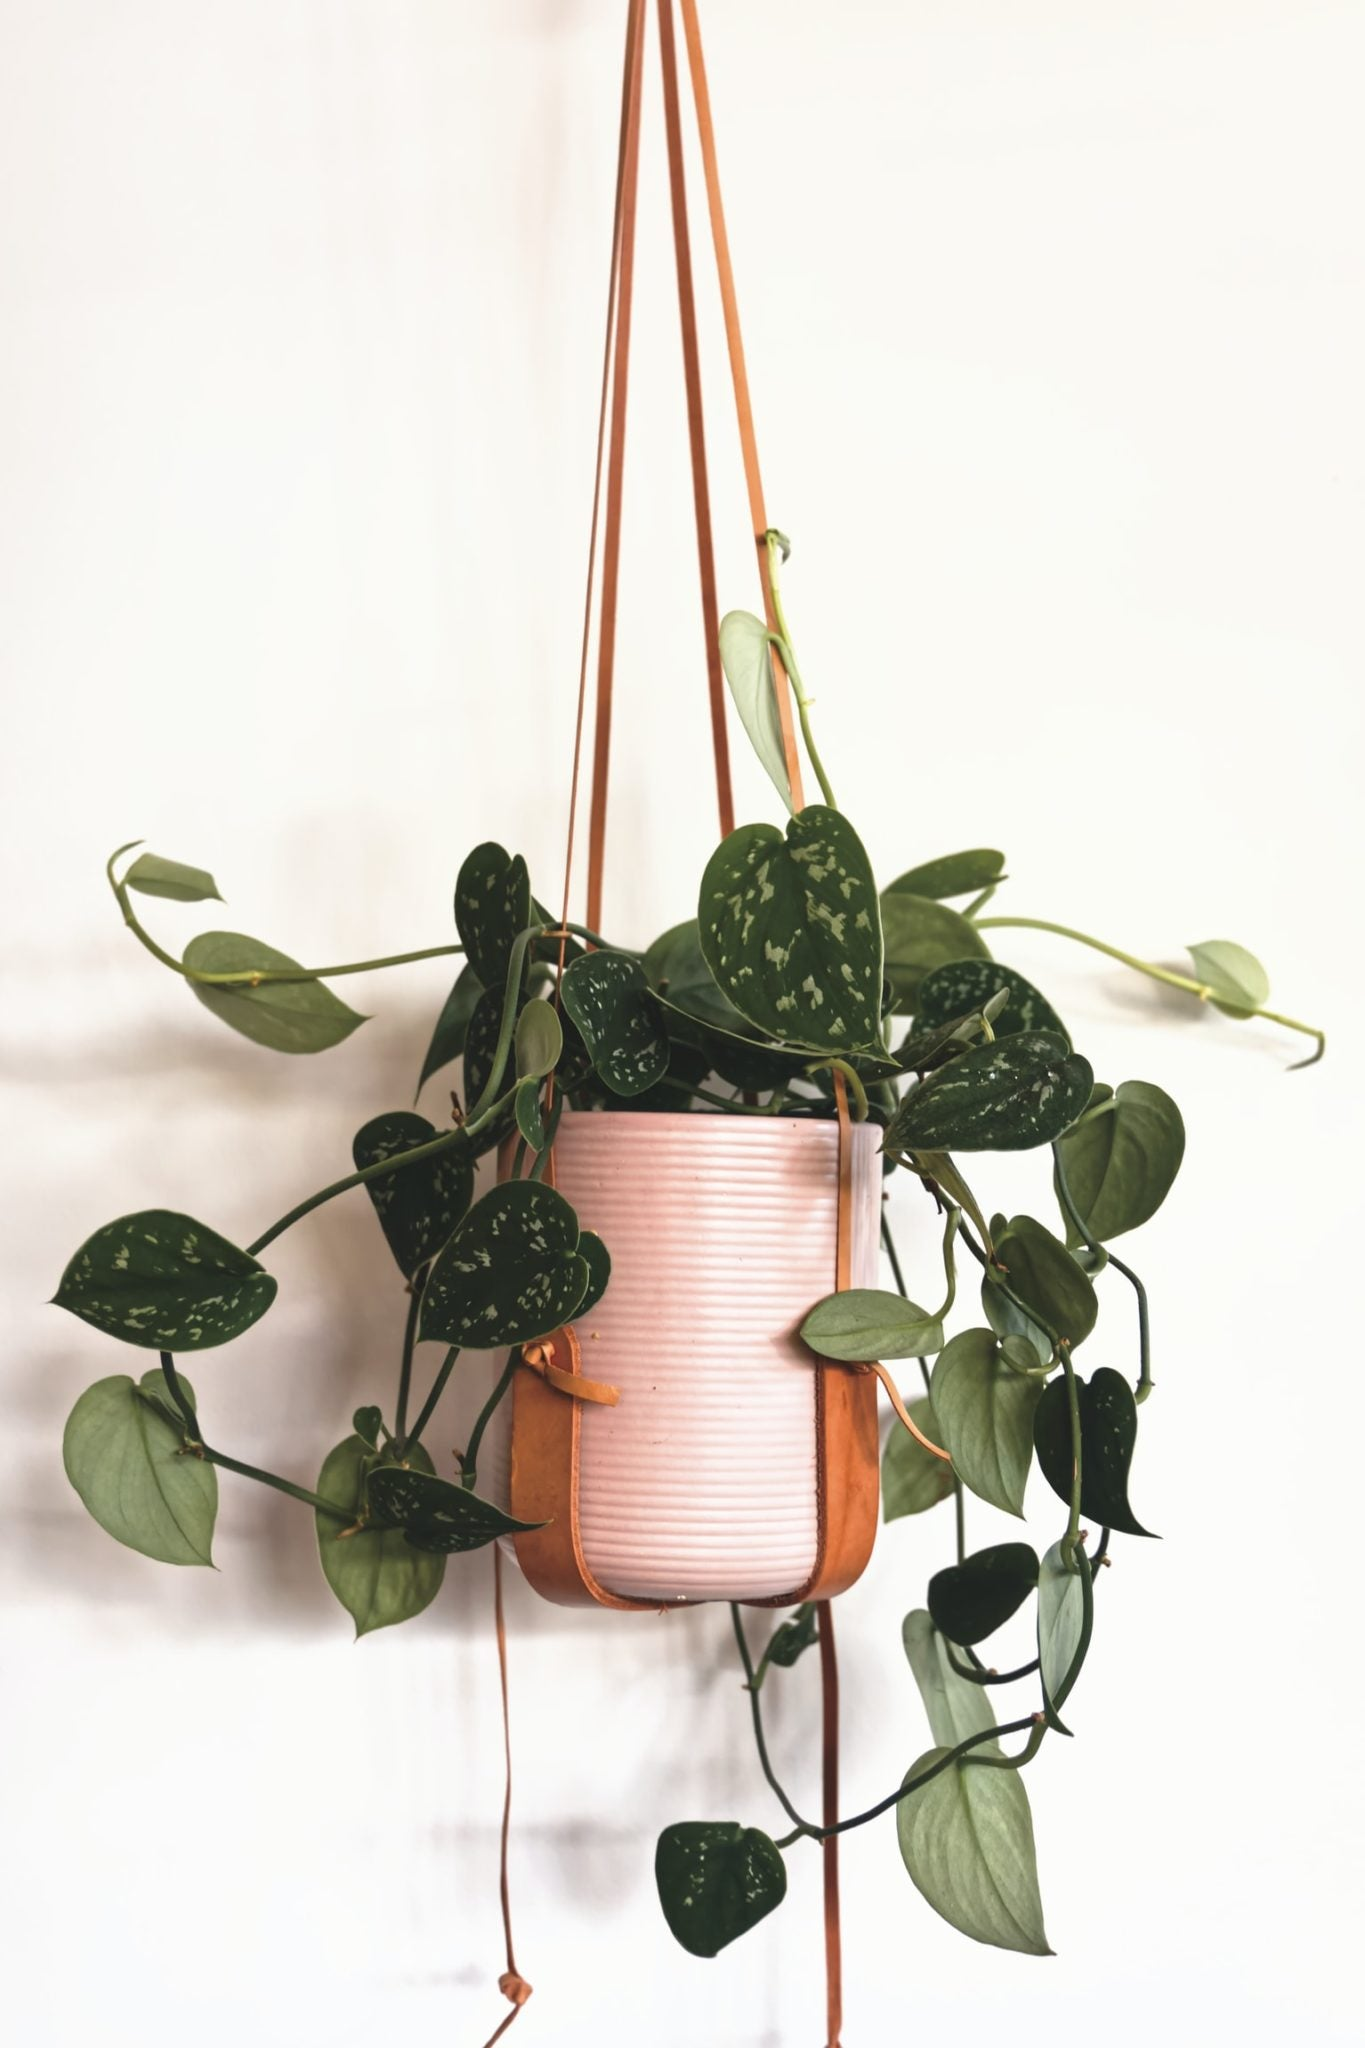 How to Care for Your Pothos